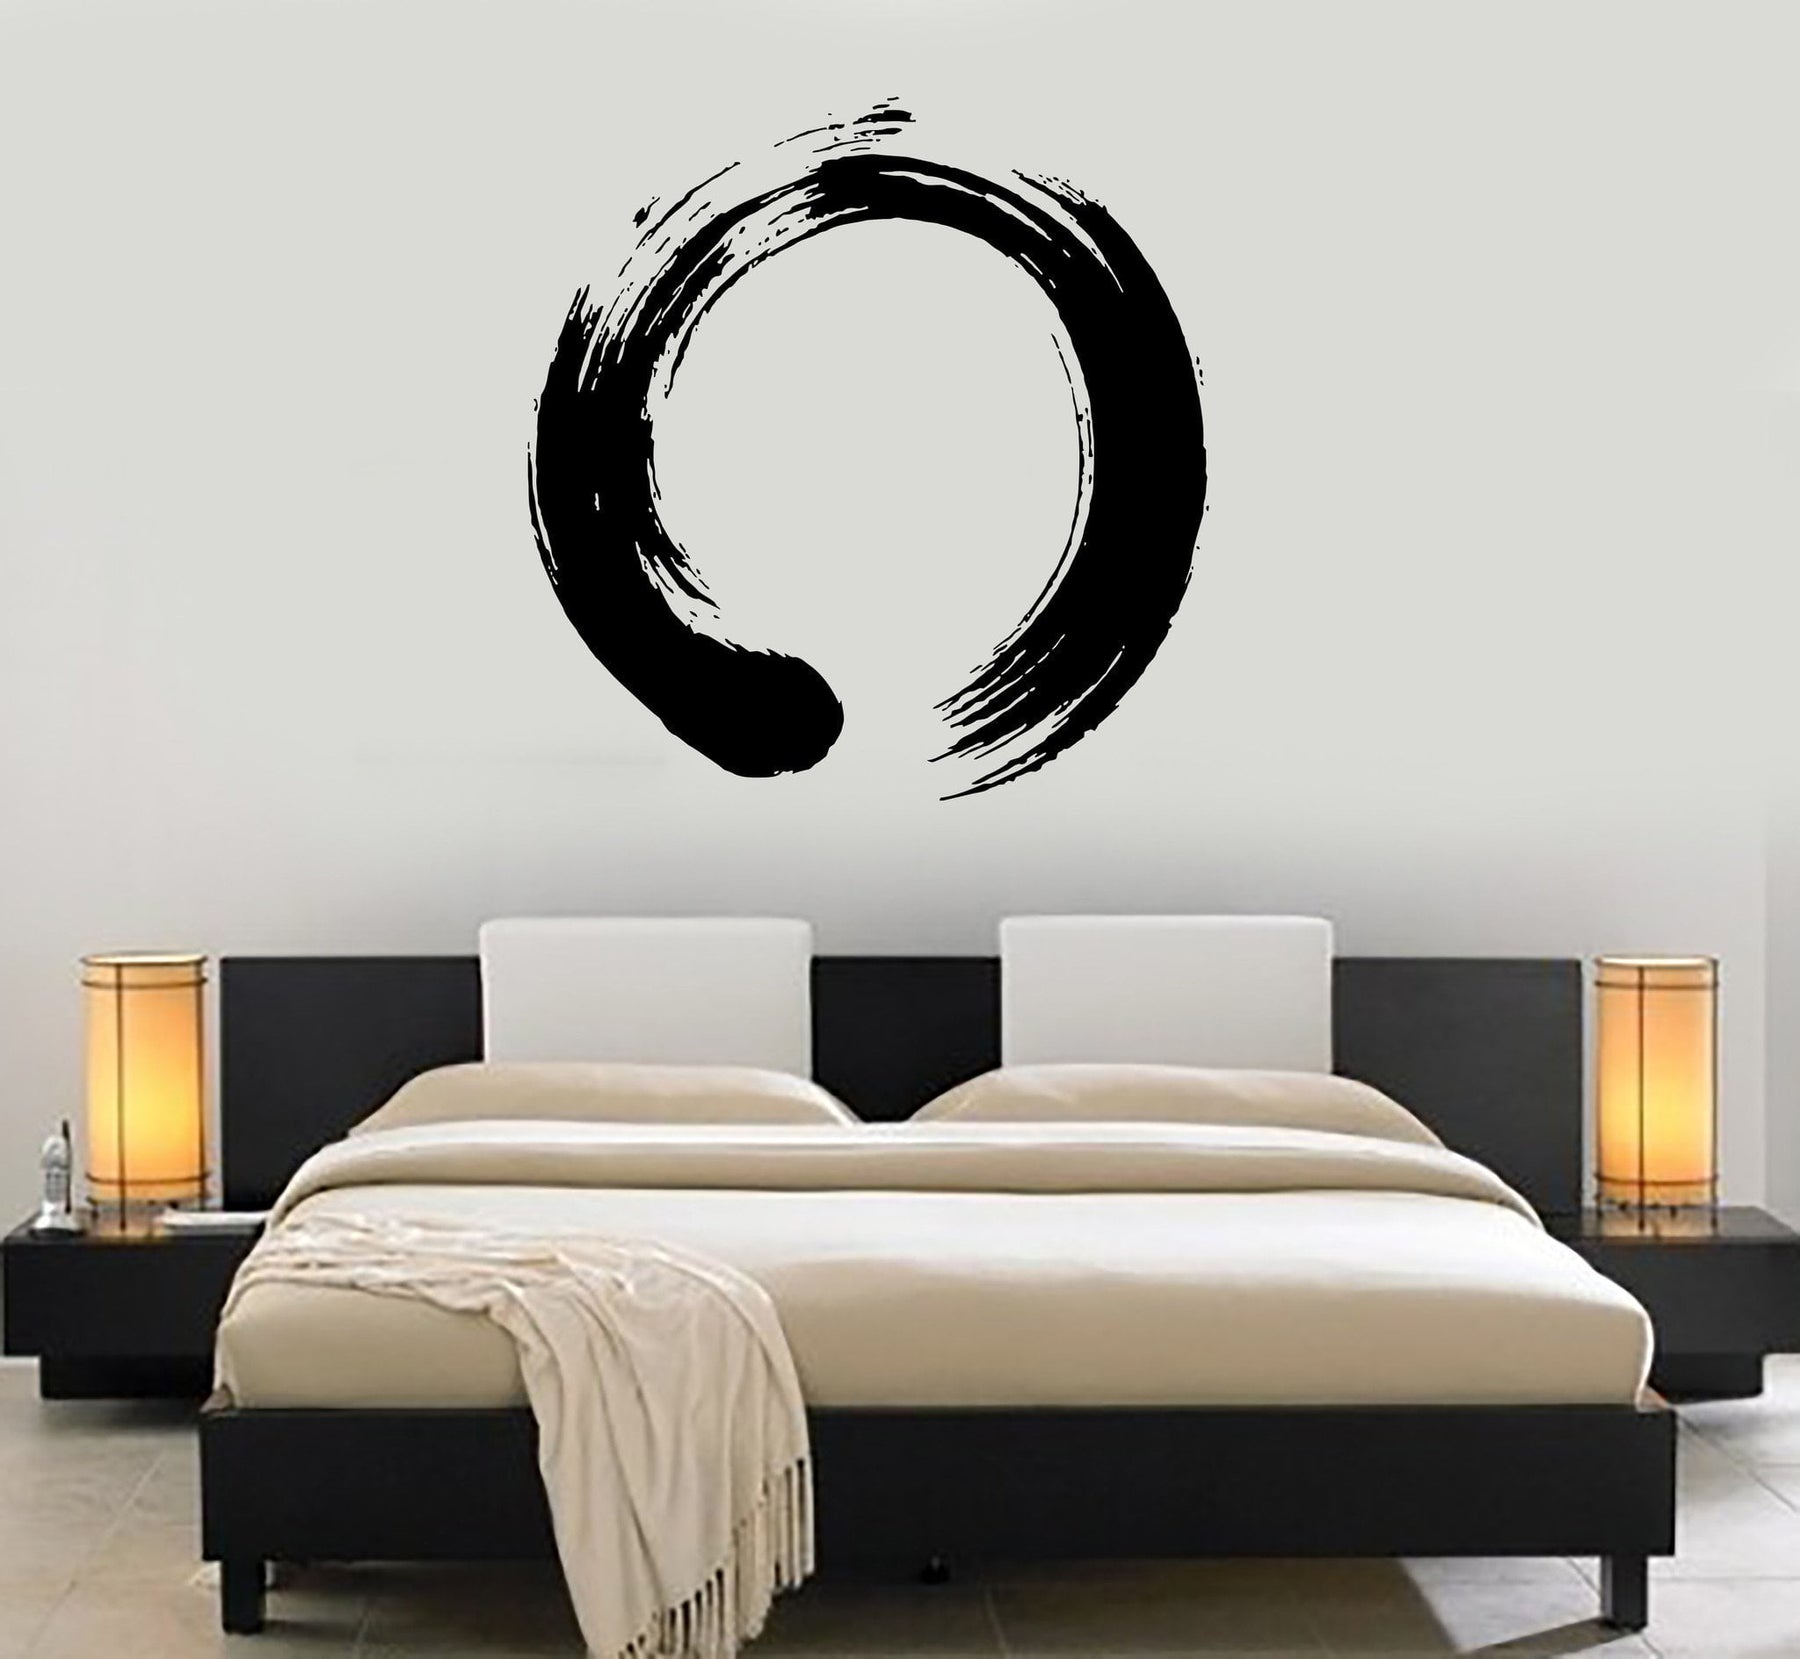 Decal Vinyl Wall Circle Enso Zen Calligraphy Japan Nirvana Stickers Unique Gift (ig1713)